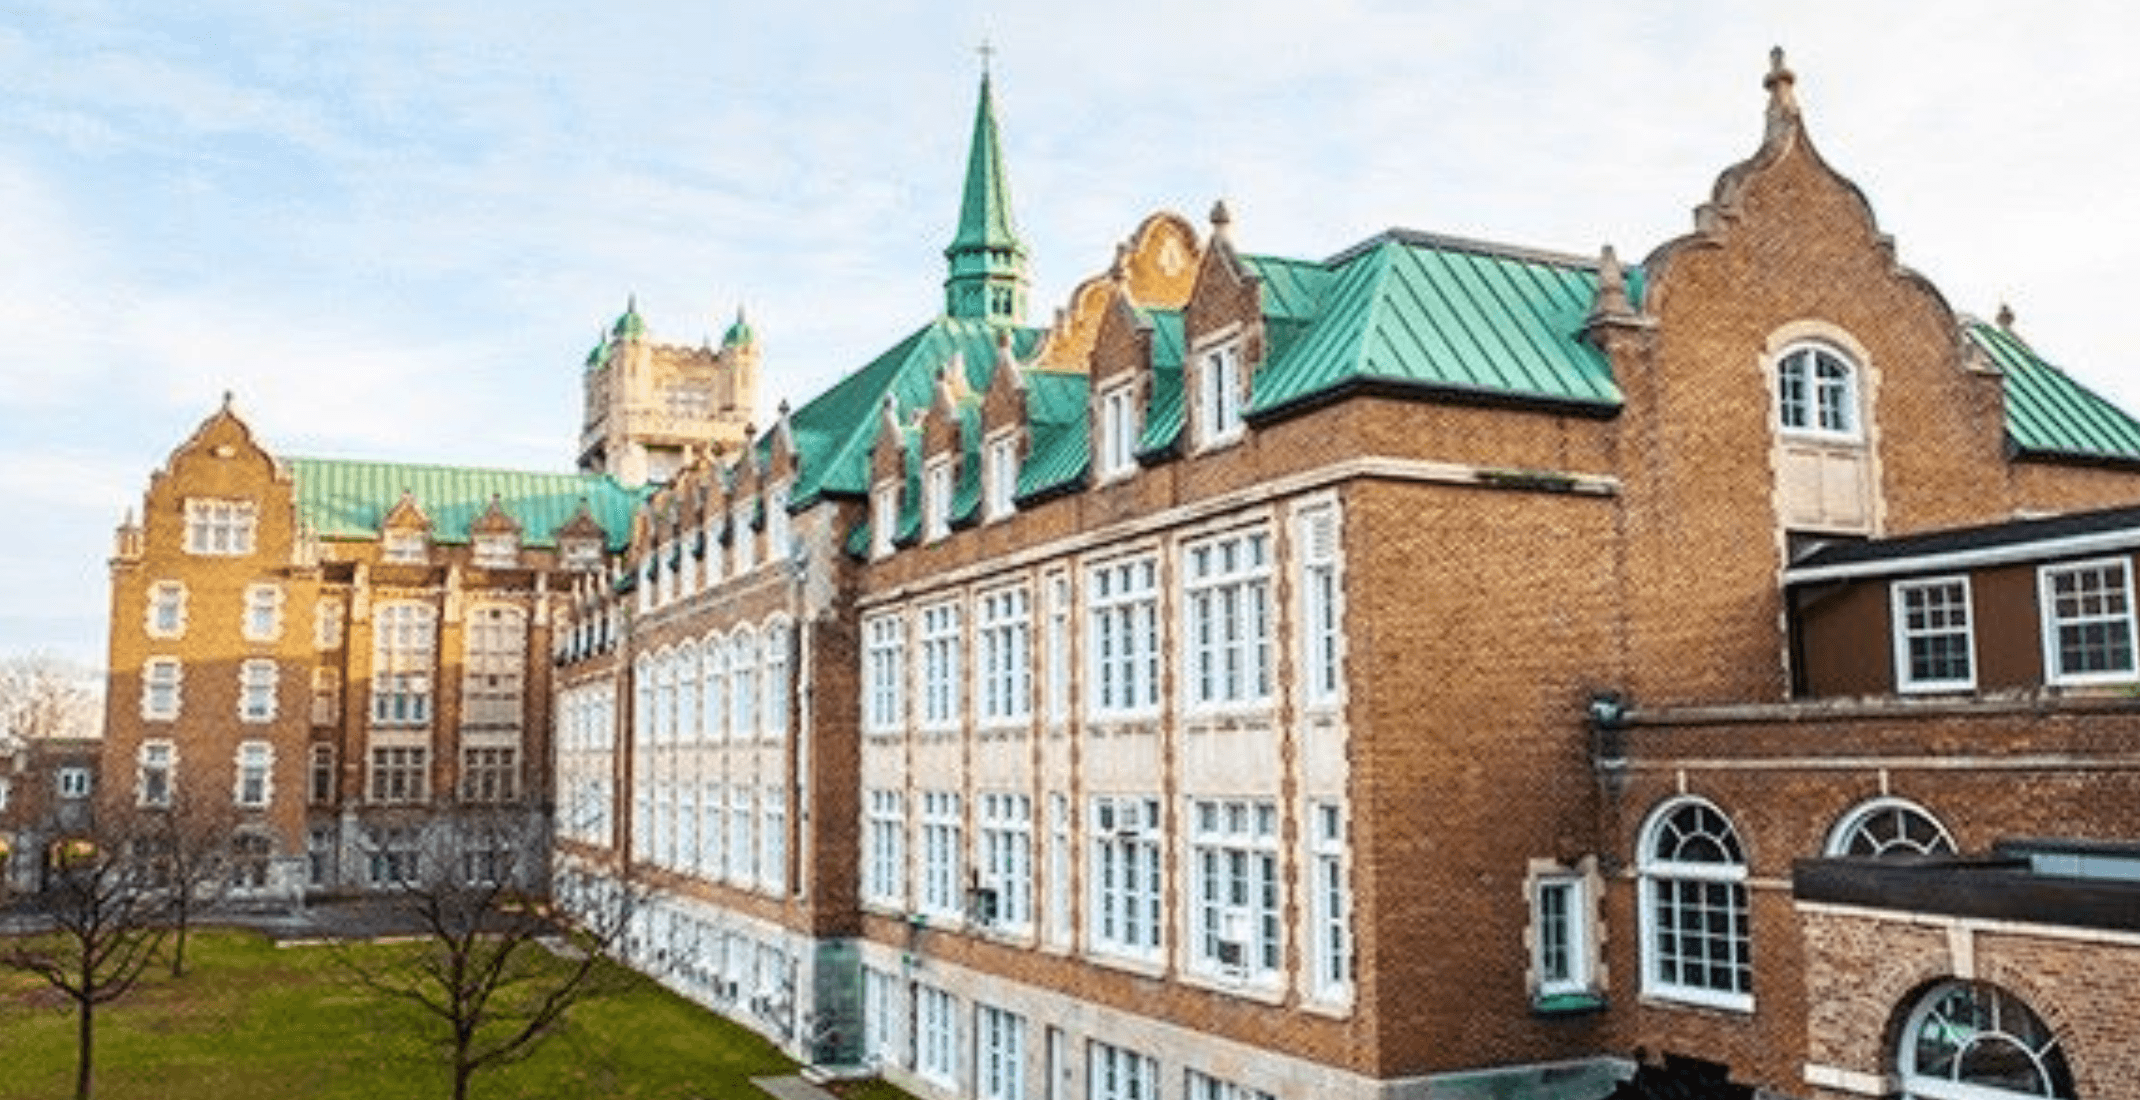 Concordia University profs accused of sexual misconduct 'reassigned'